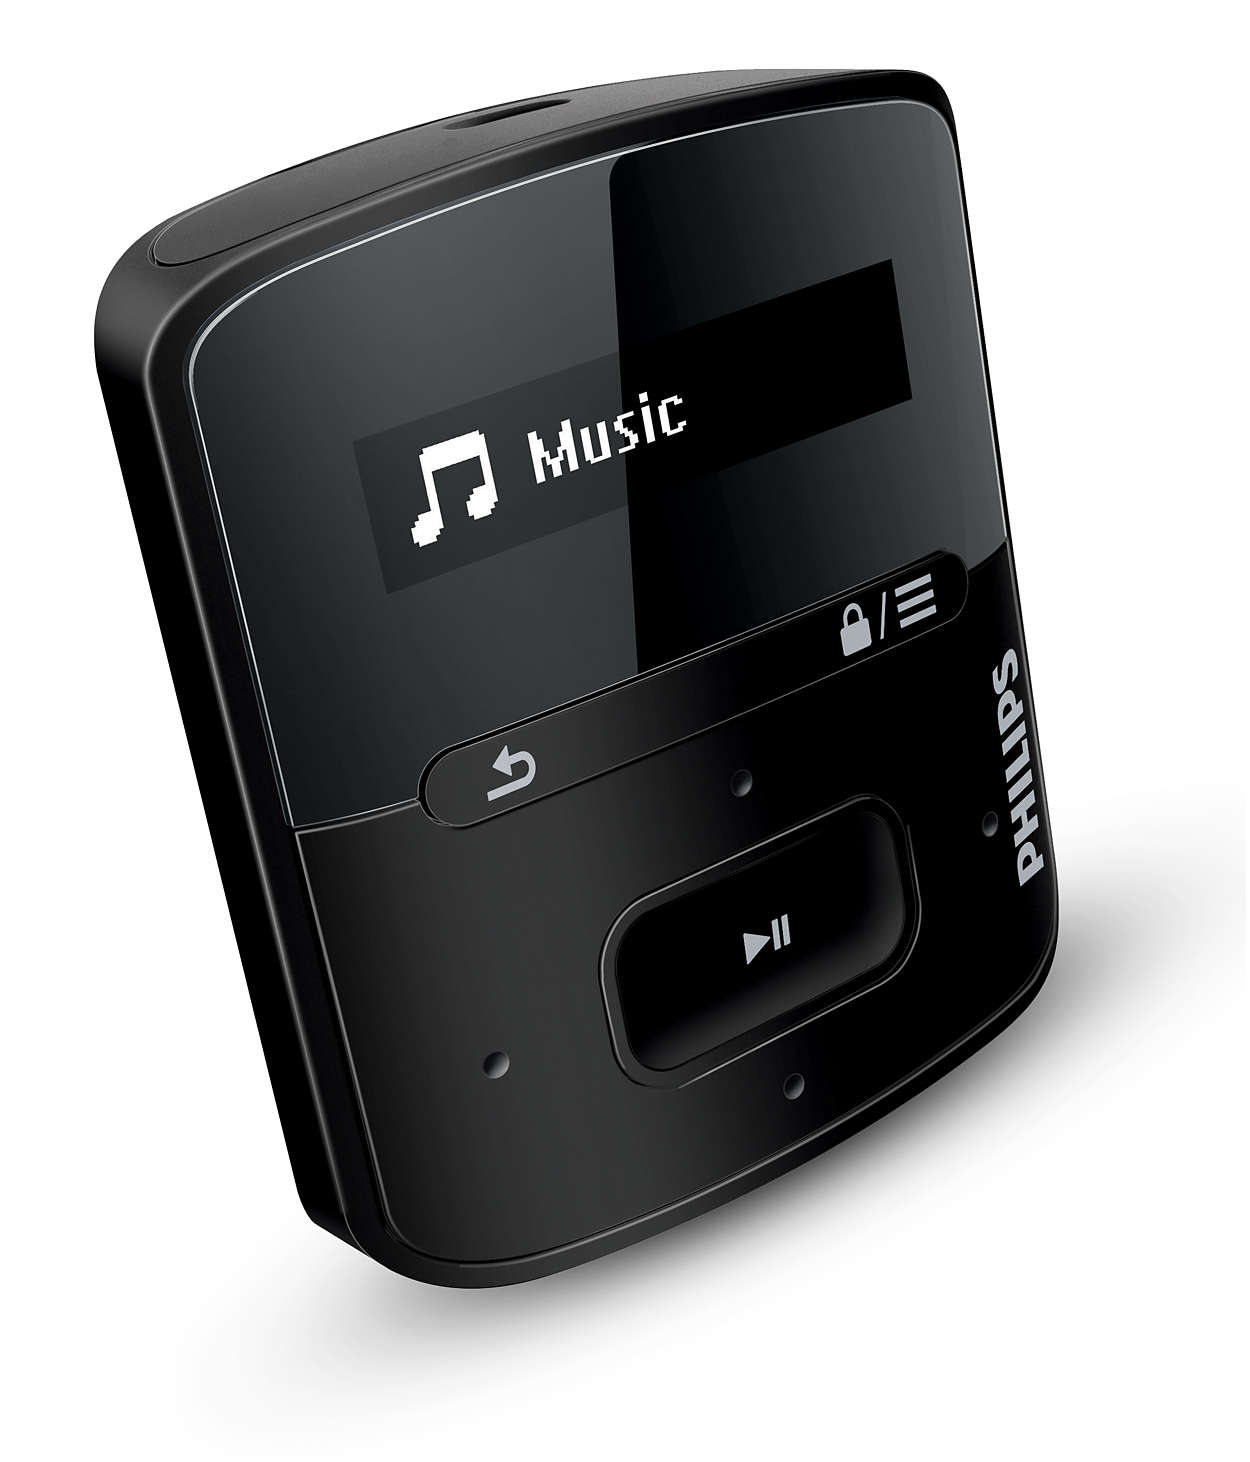 mp3 player sa4rga04kf 37 philips. Black Bedroom Furniture Sets. Home Design Ideas